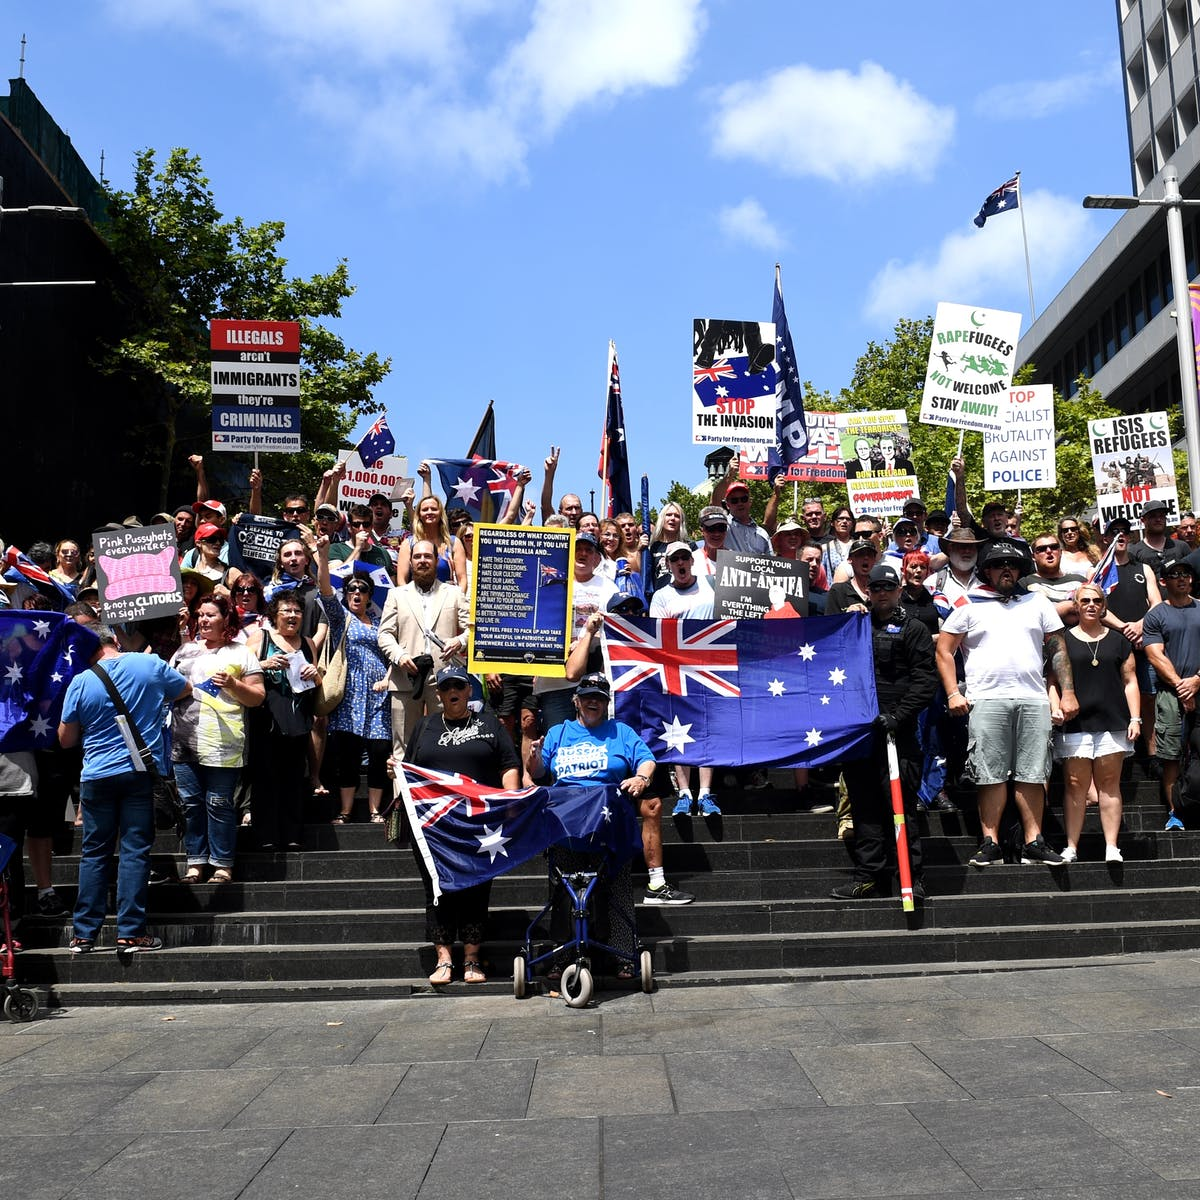 Right-wing extremism has a long history in Australia